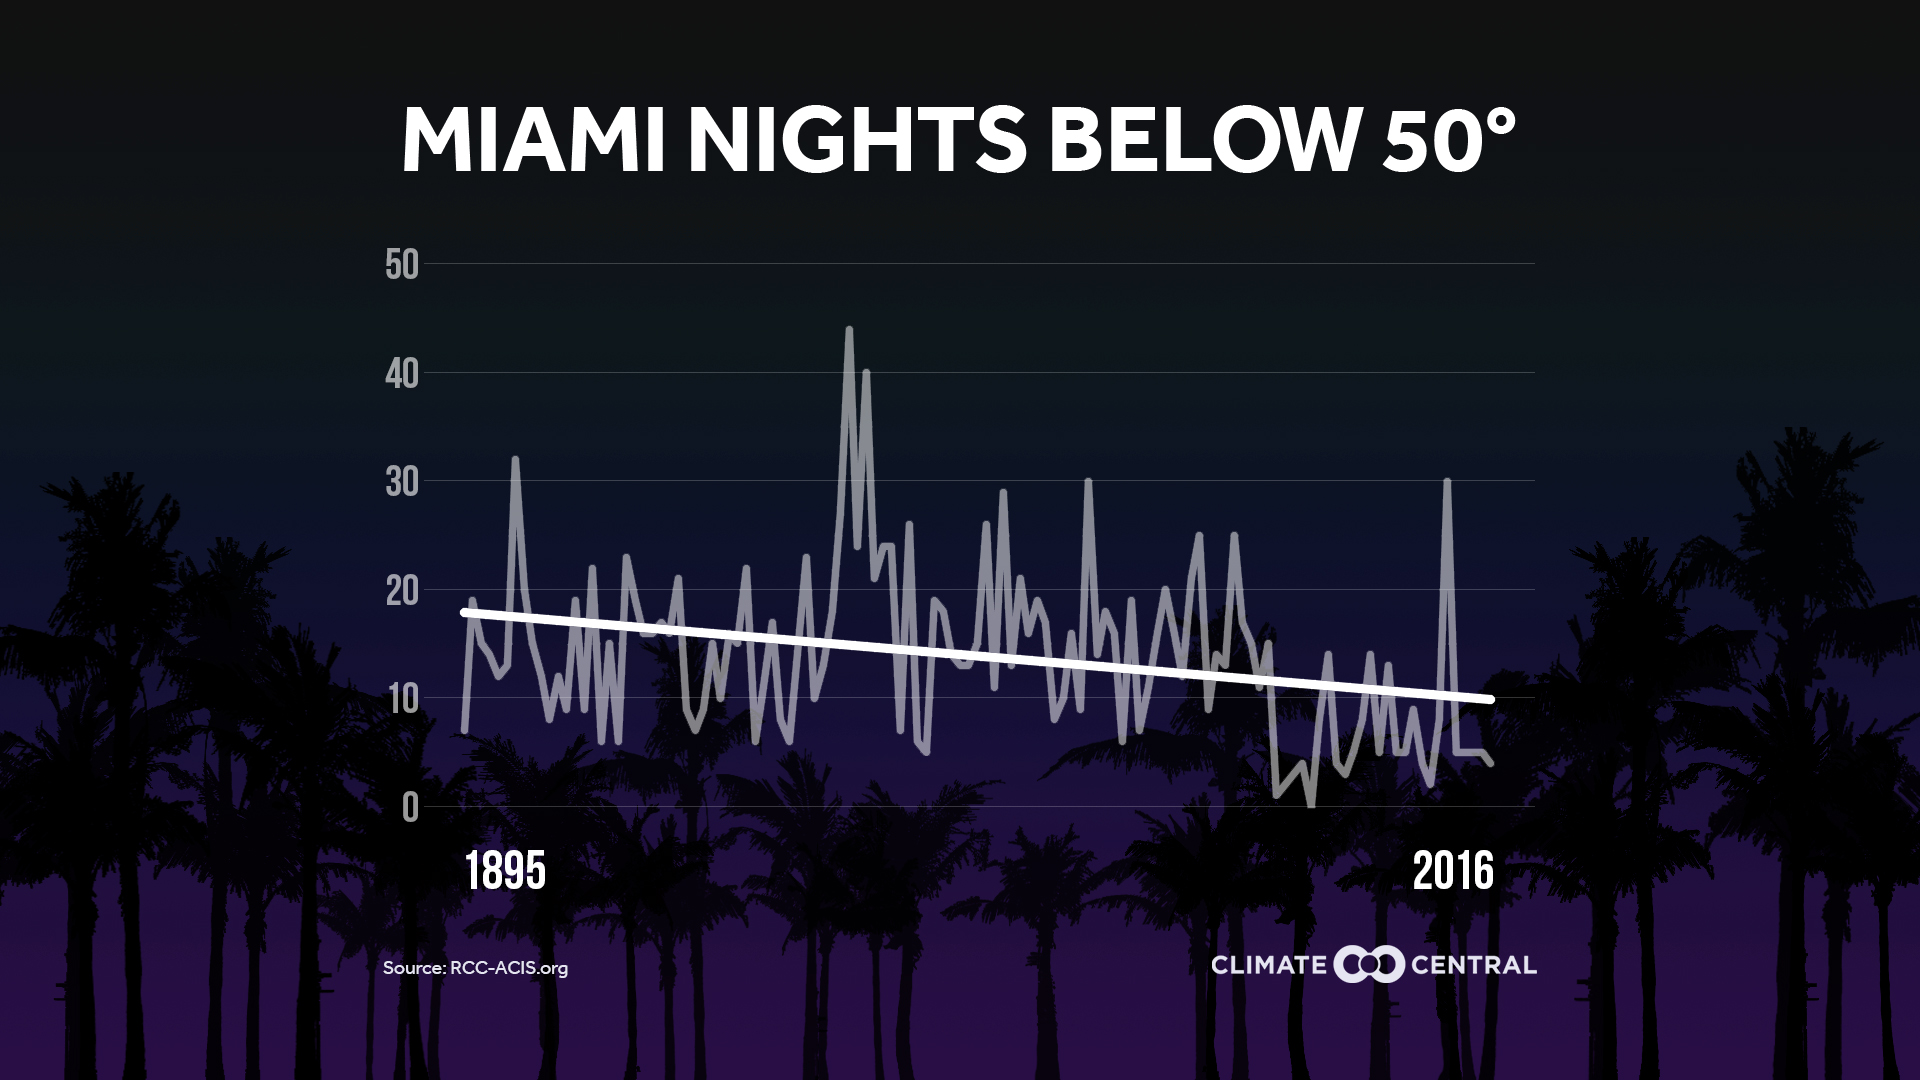 miami nights under 50